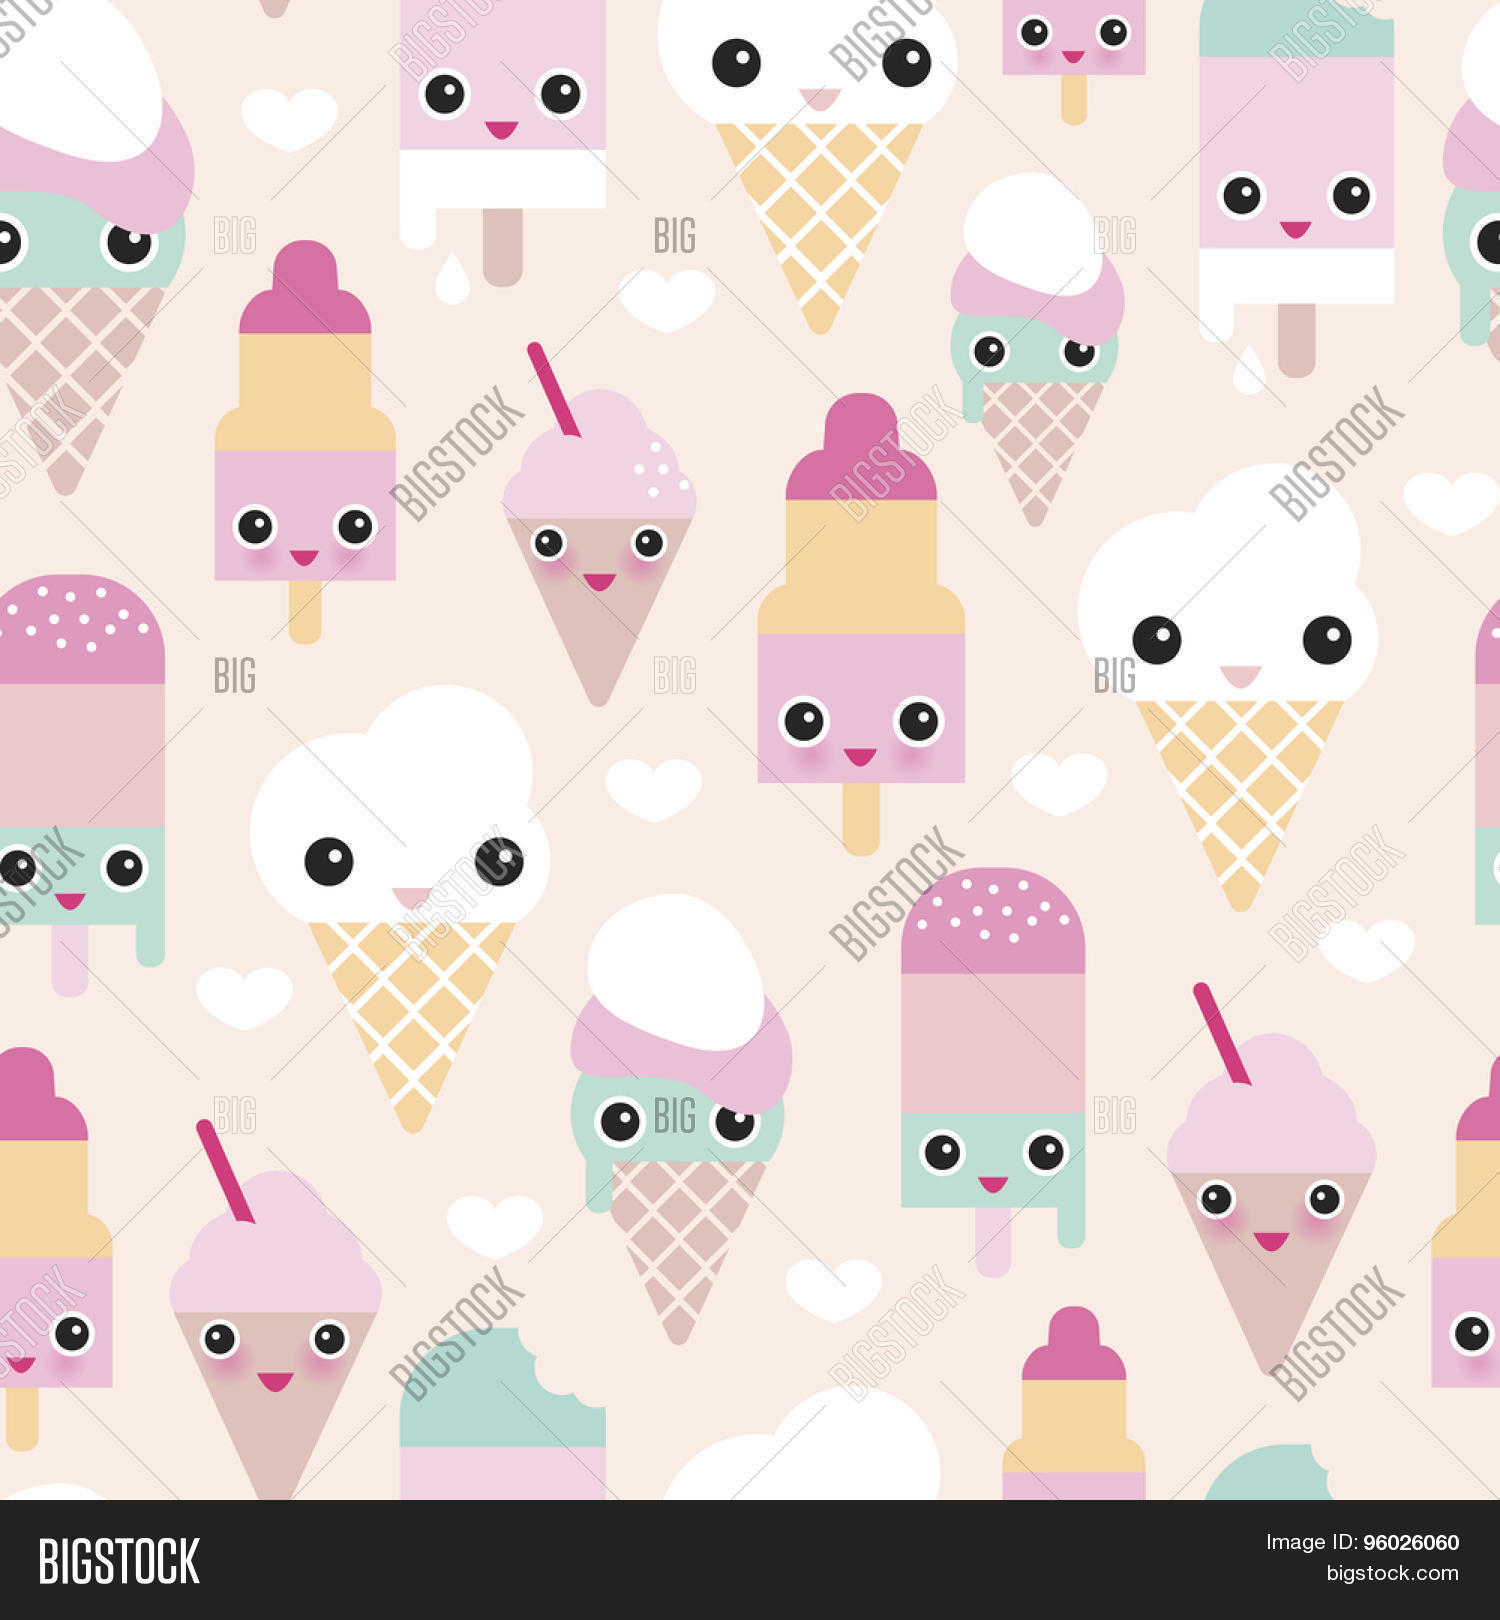 Sweet Ice Cream Flat Colorful Seamless Pattern Vector: Seamless Colorful Pastel Popsicle Adorable Kawaii Summer